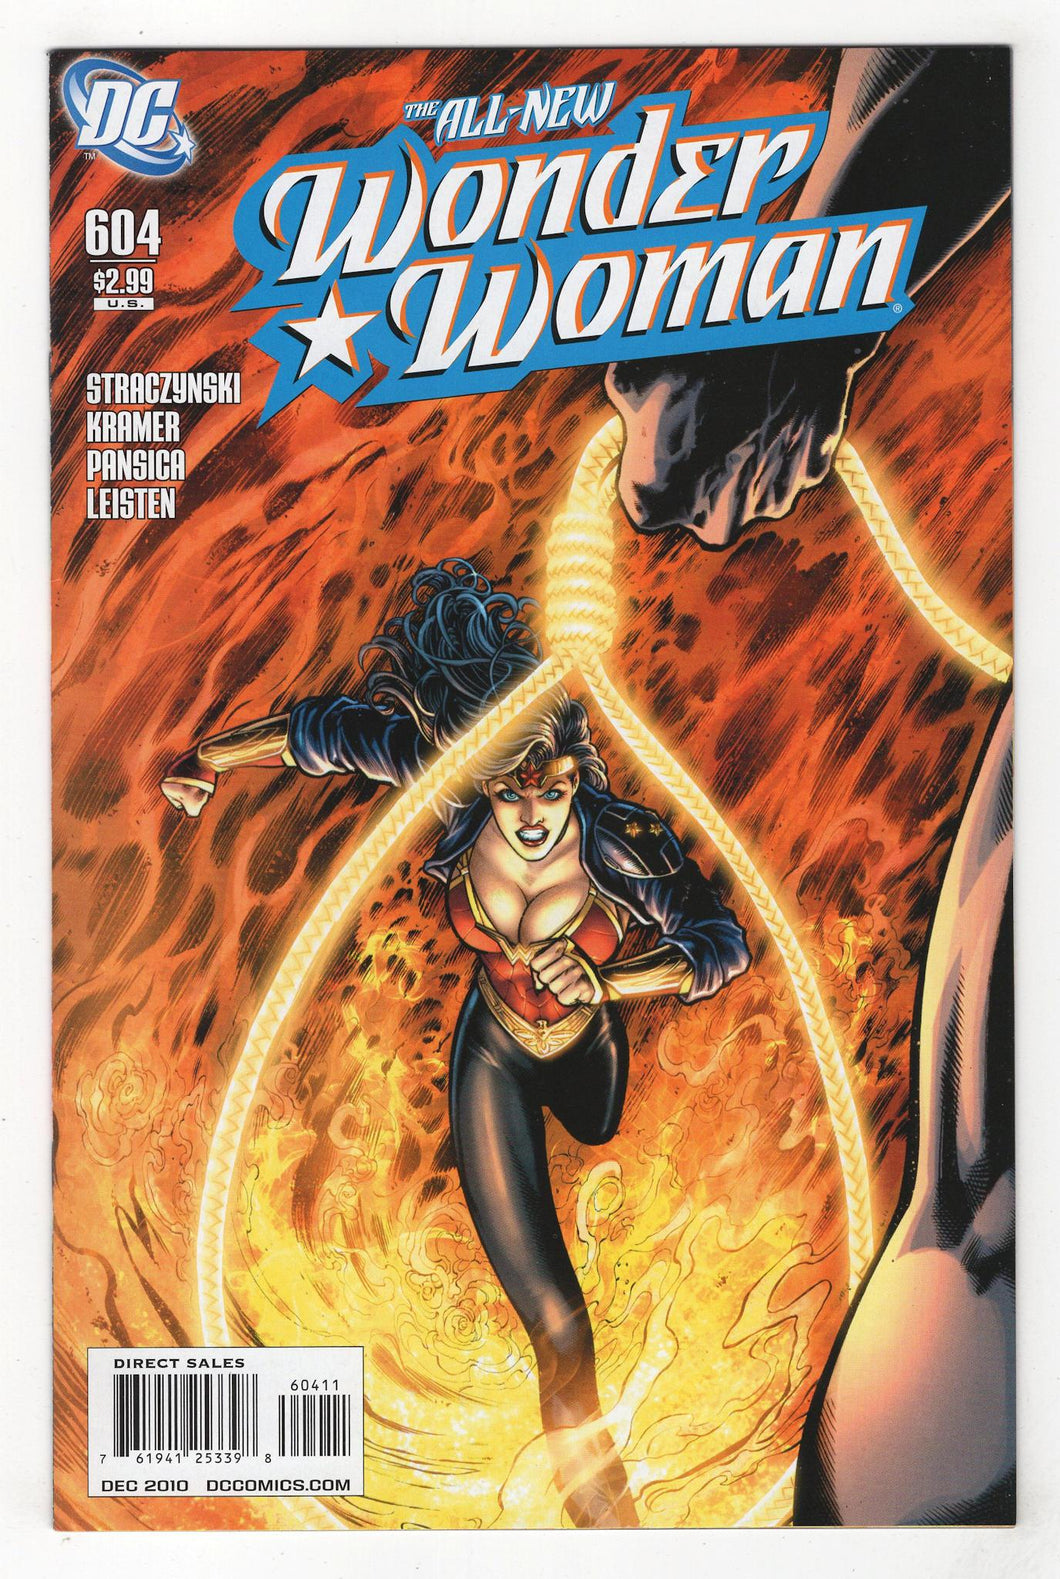 Wonder Woman #604 Cover Front